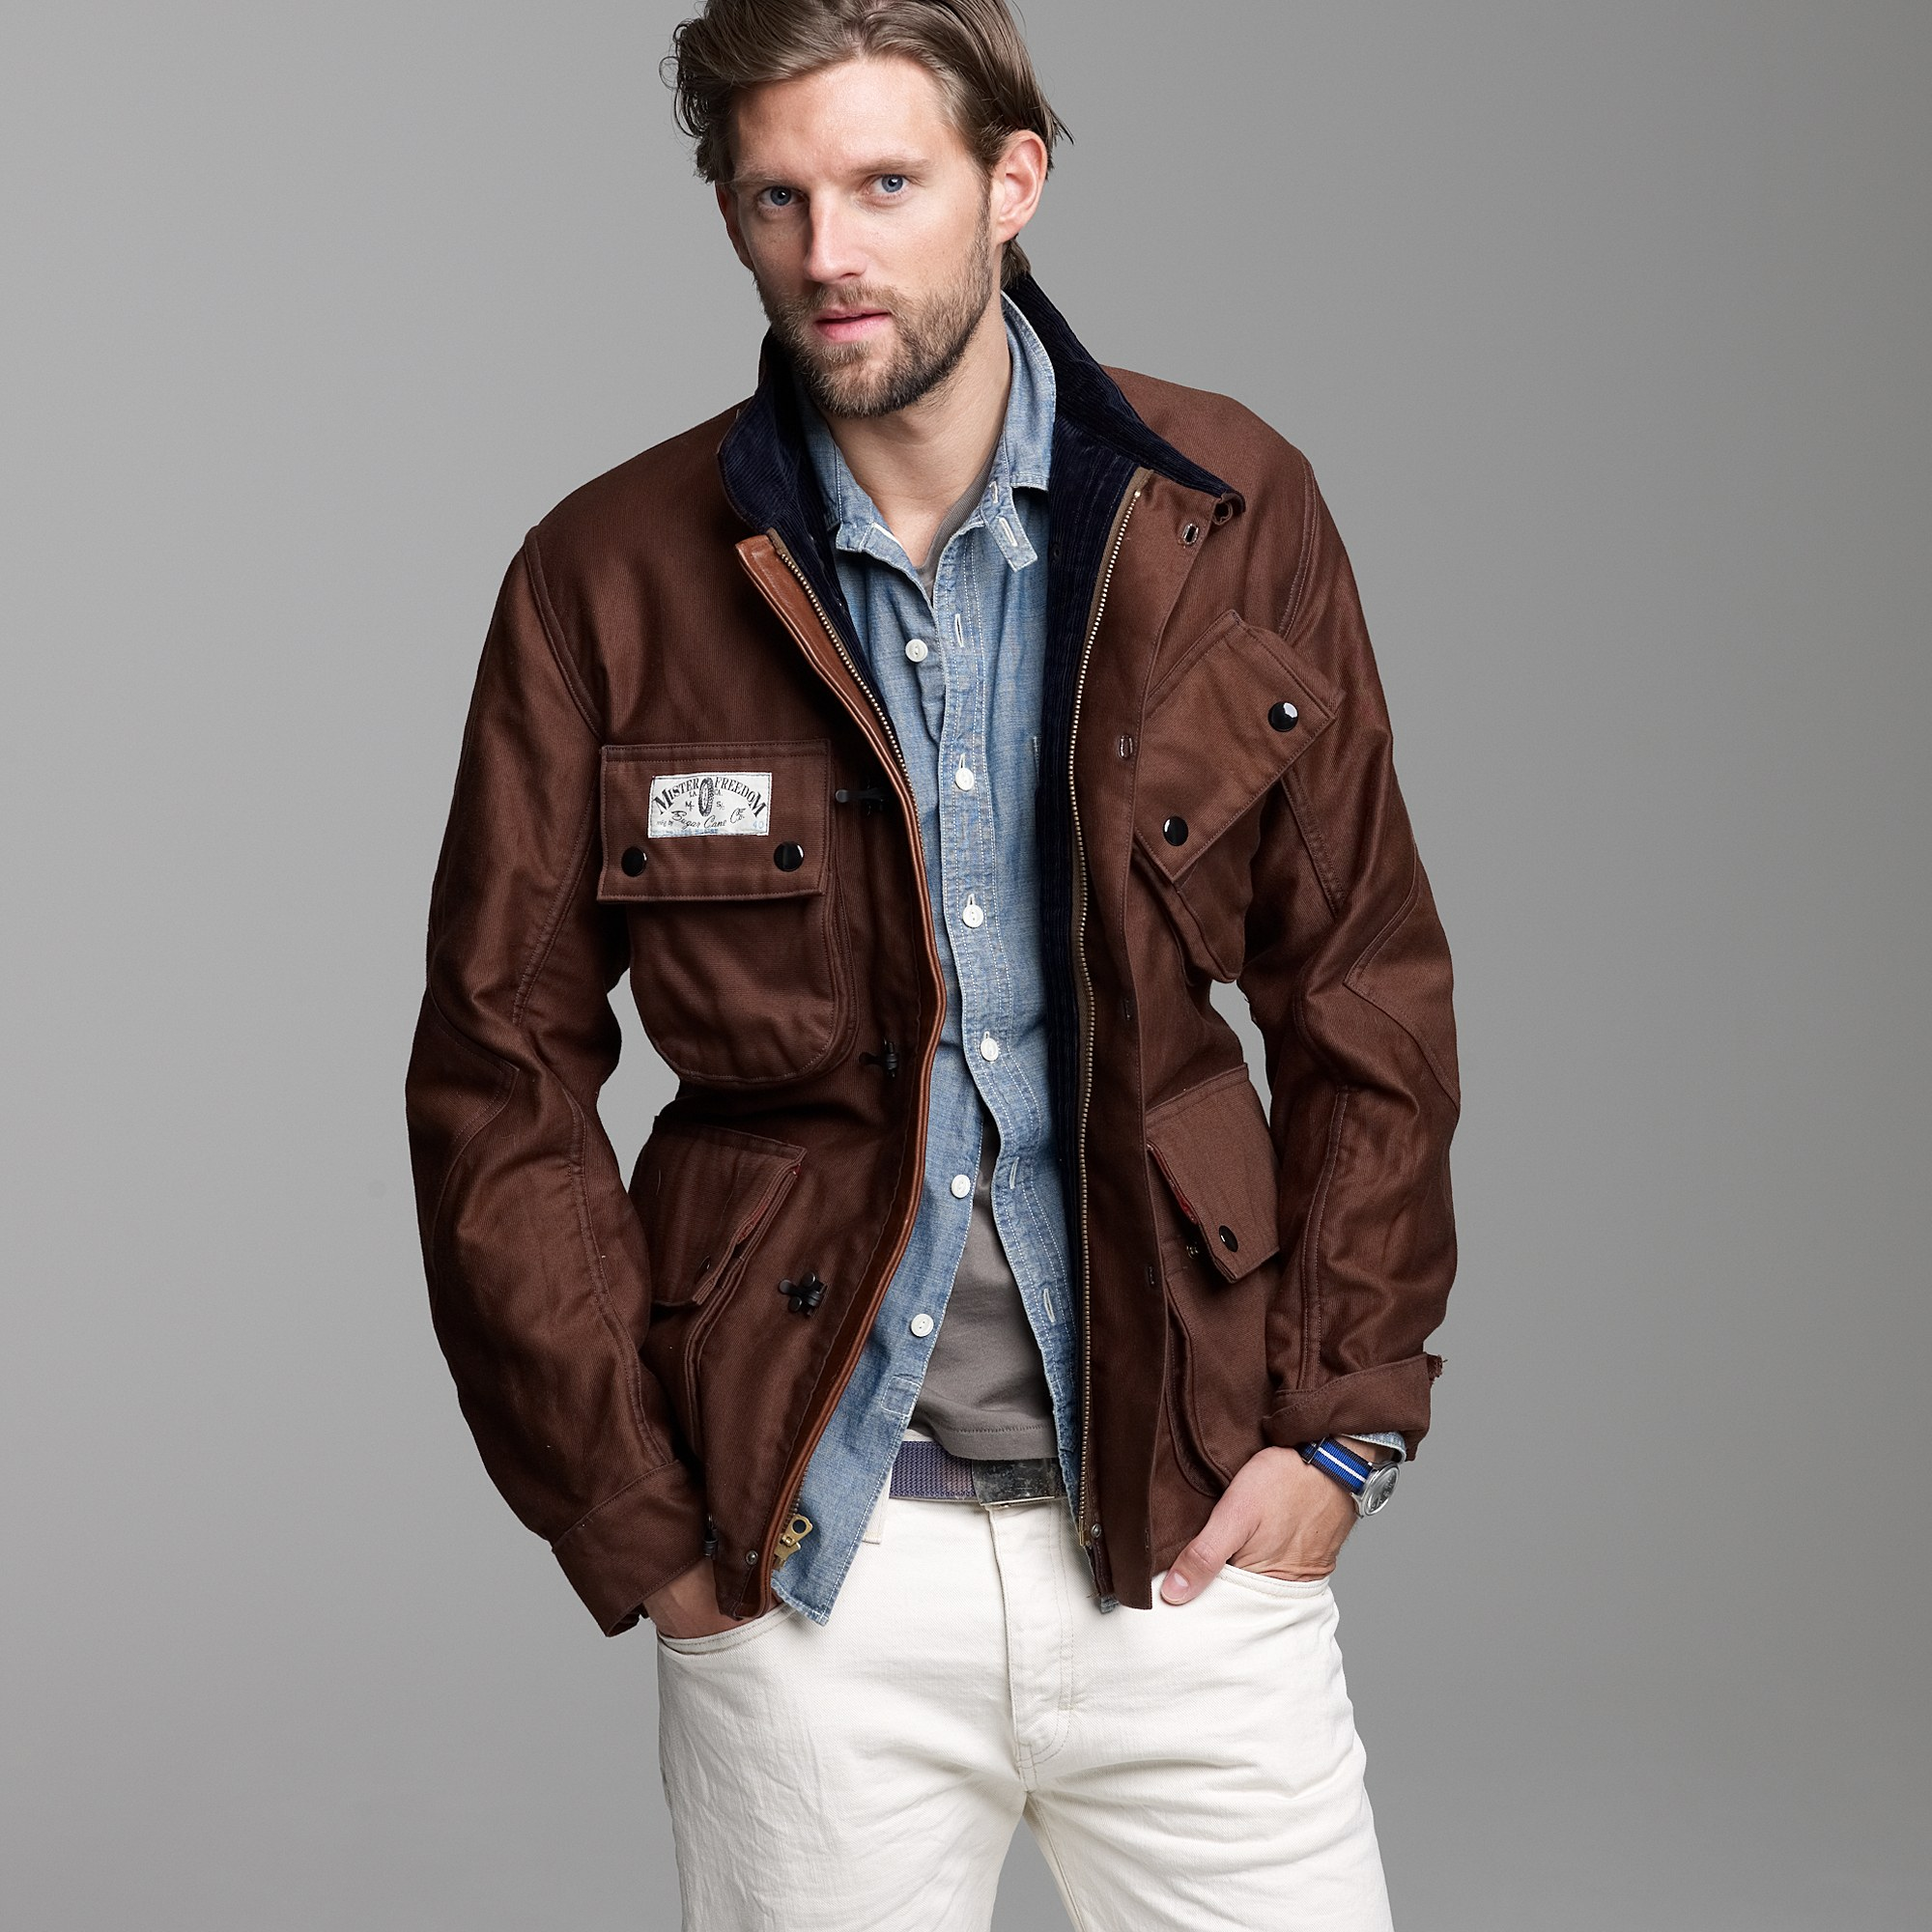 2017 Interior Color Trends J Crew Mister Freedom 174 Mulholland Master Jacket In Brown